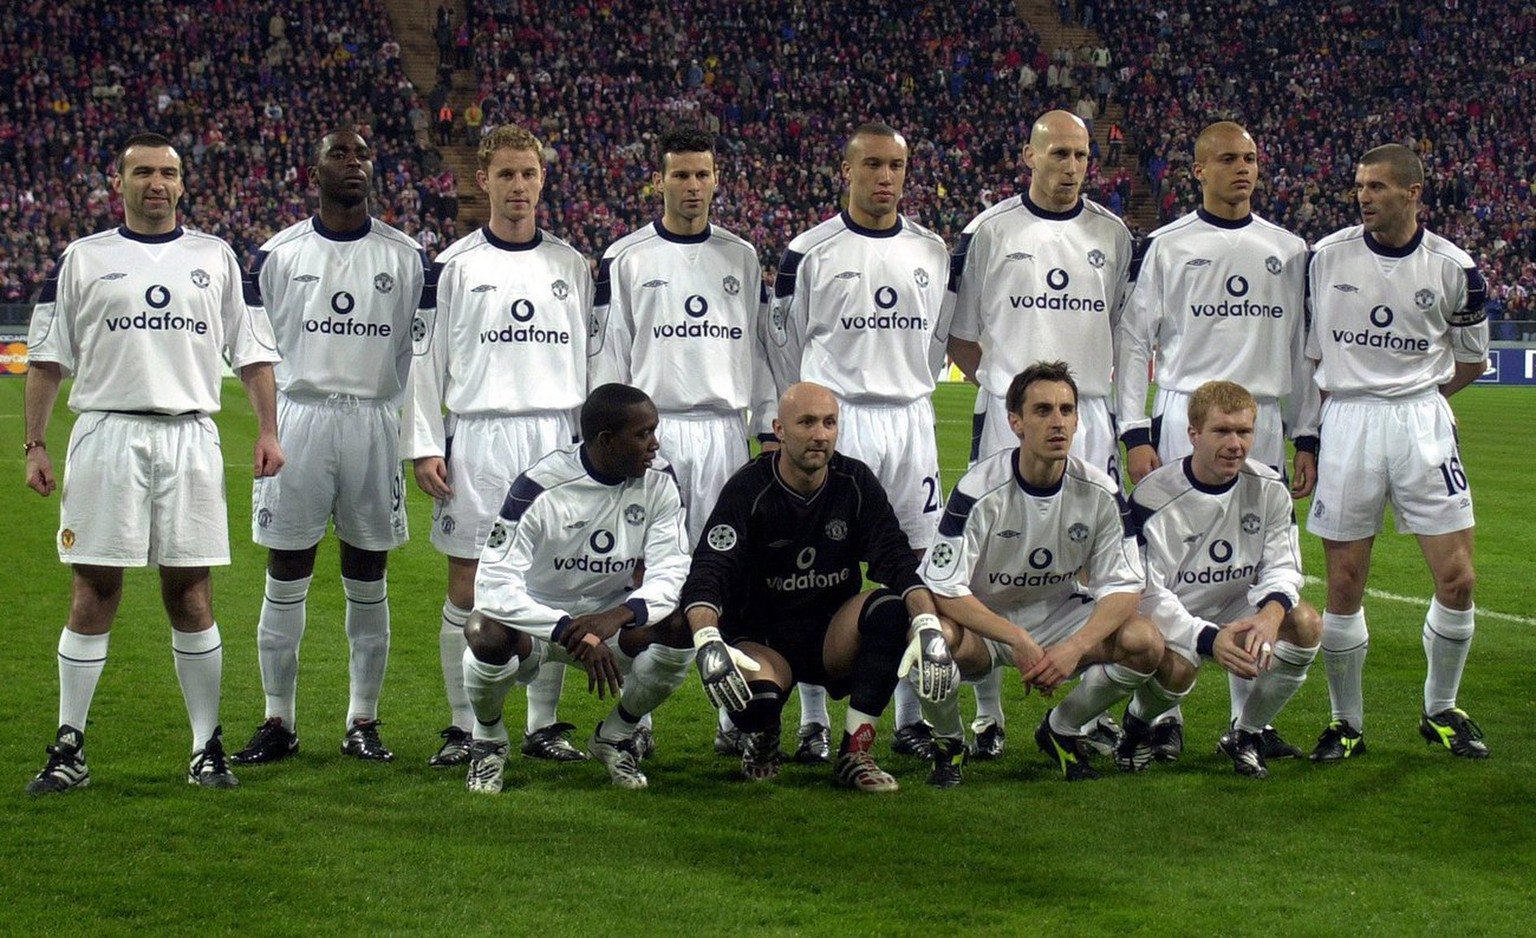 An Eric Cantona look-alike, in full soccer kit (extreme left) gate-crashes a team photo of Manchester United  before the Champions League quarter final game against Bayern Munich. The identity of the bold fan is unknown and his presence was undetected by players or officials. The Man. United players are (from right to left, back). Roy Keane., Wes Brown, Jaap Stam, Mikael Silvestre, Ryan Giggs, Nicky Butt and Andy Cole. In front, from right to left are: Paul Scholes, Gary Neville, Fabien Barthez and Dwight Yorke. They lost 2-1 to Bayern. (KEYSTONE/EPA PHOTO/DPA/Matthias Schrader)